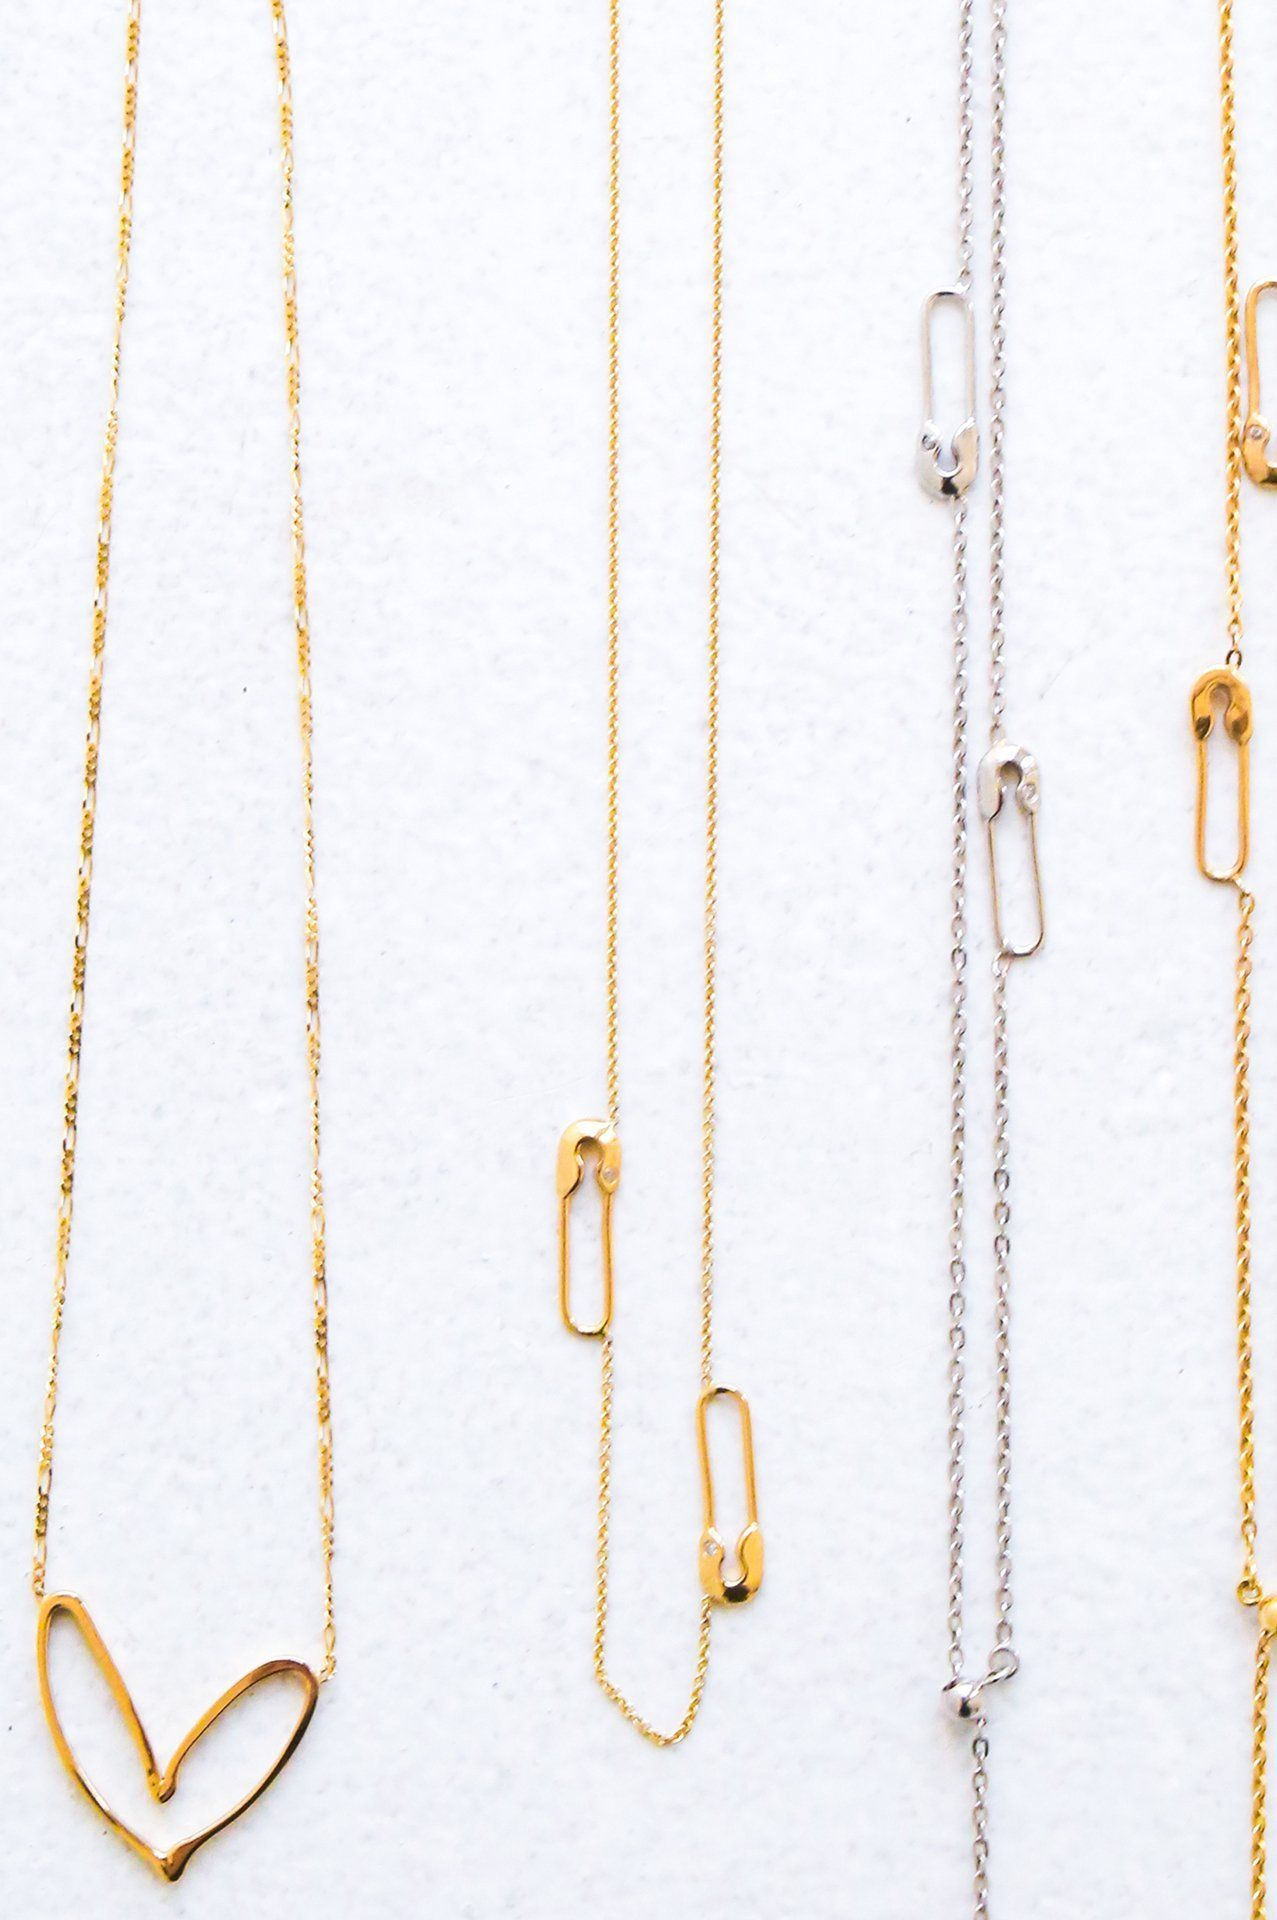 Unique Simple Safety Pin Design Dangle Charm Gold Finish Dainty Chain Necklace